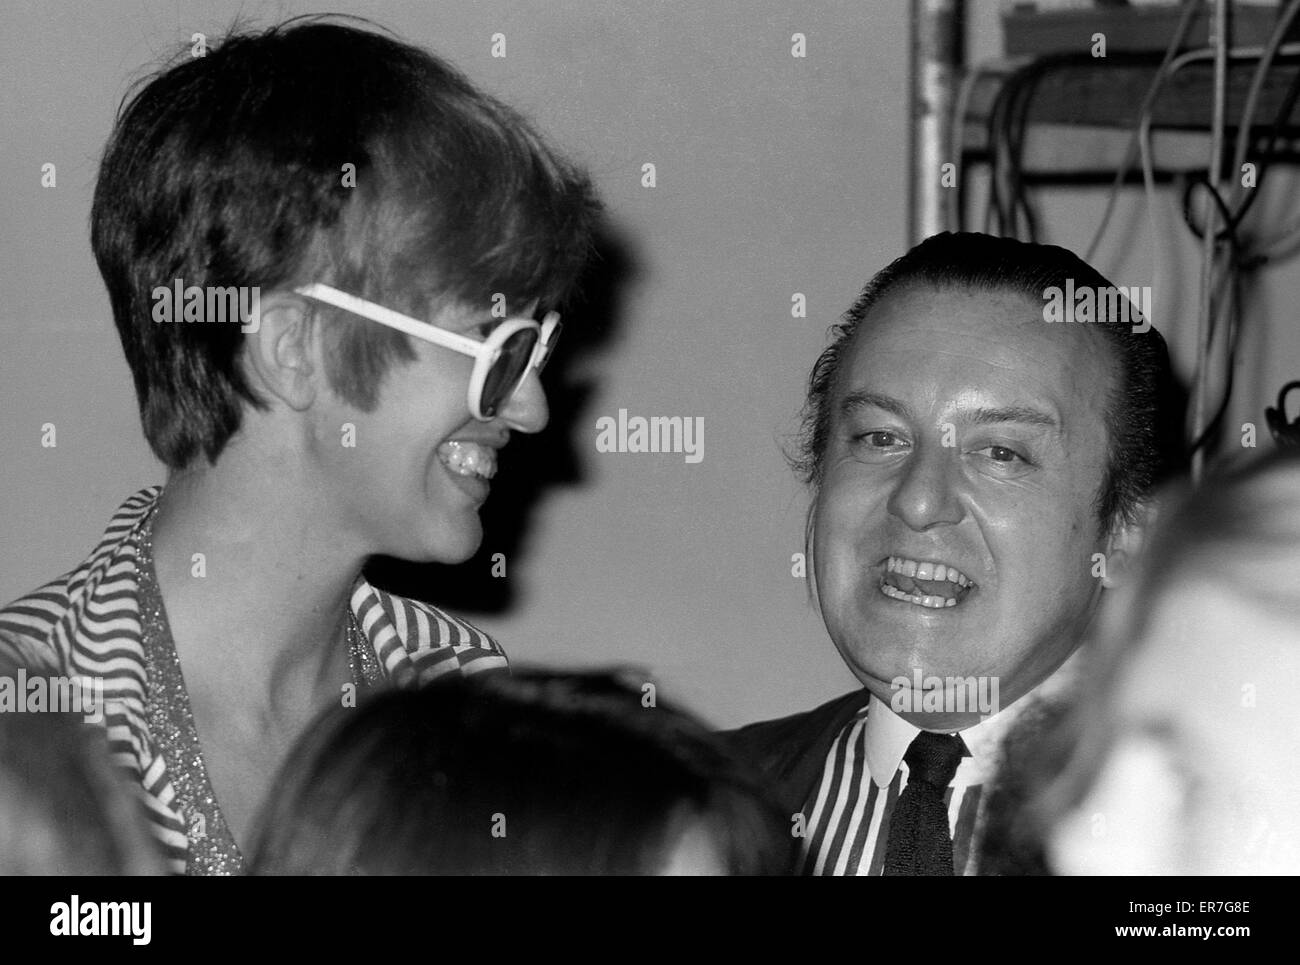 Janet Street-Porter and architect Cedric Price at the Architectural Association Summer Session at the ICA Institute - Stock Image